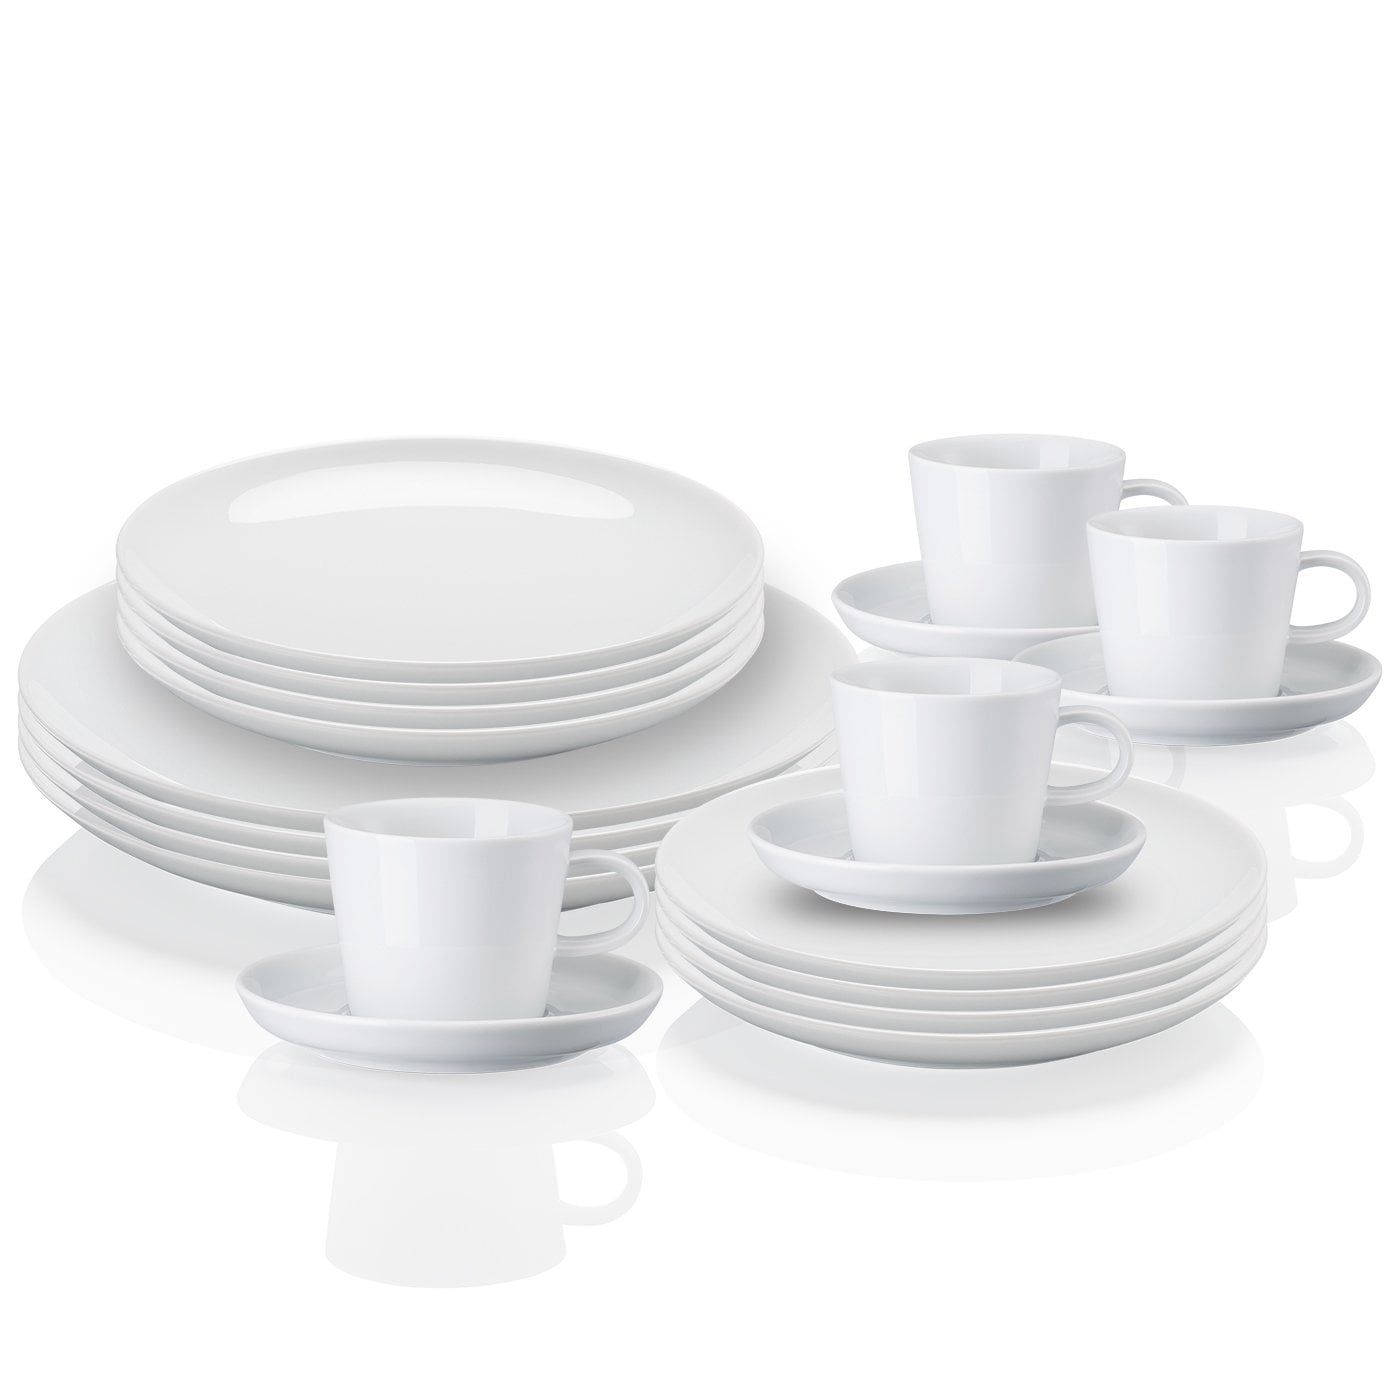 Cucina 4 X 4 family set 20 pcs.